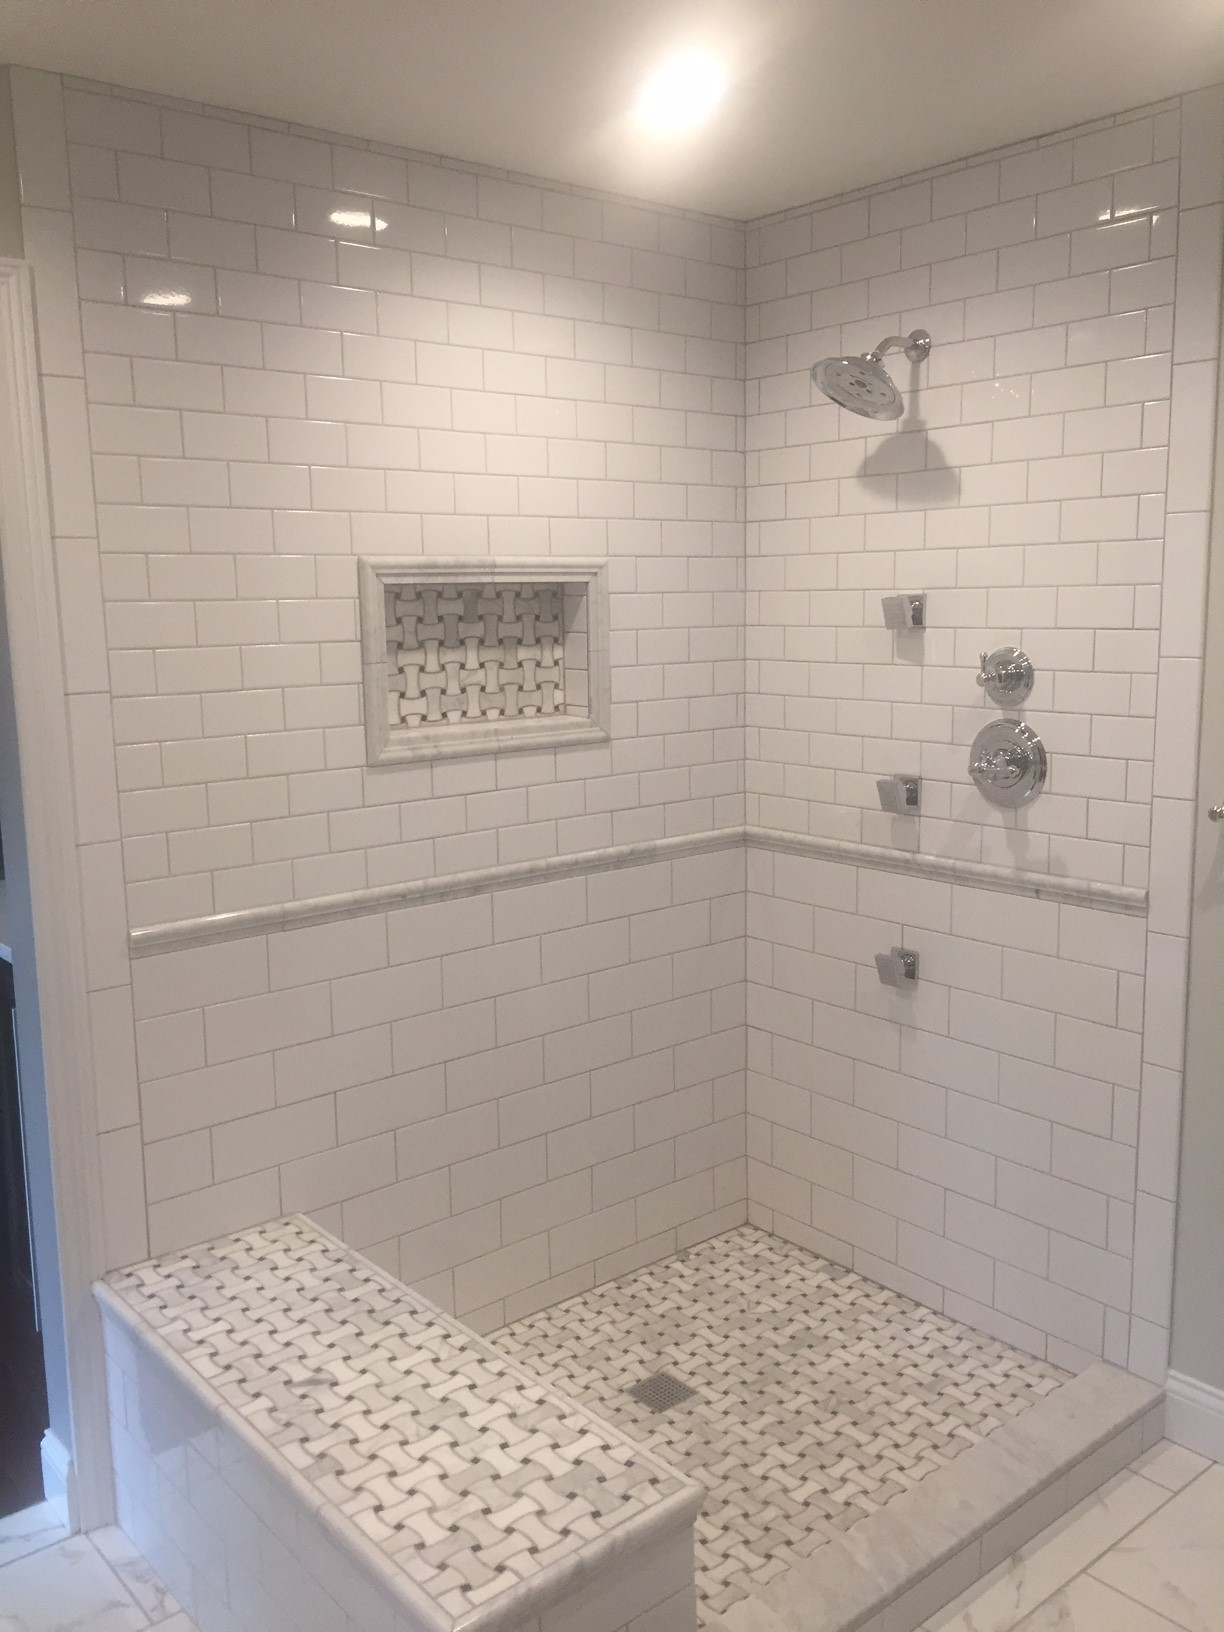 5 Reasons Why Ceramic Tiles Are Perfect For Your Bathroom